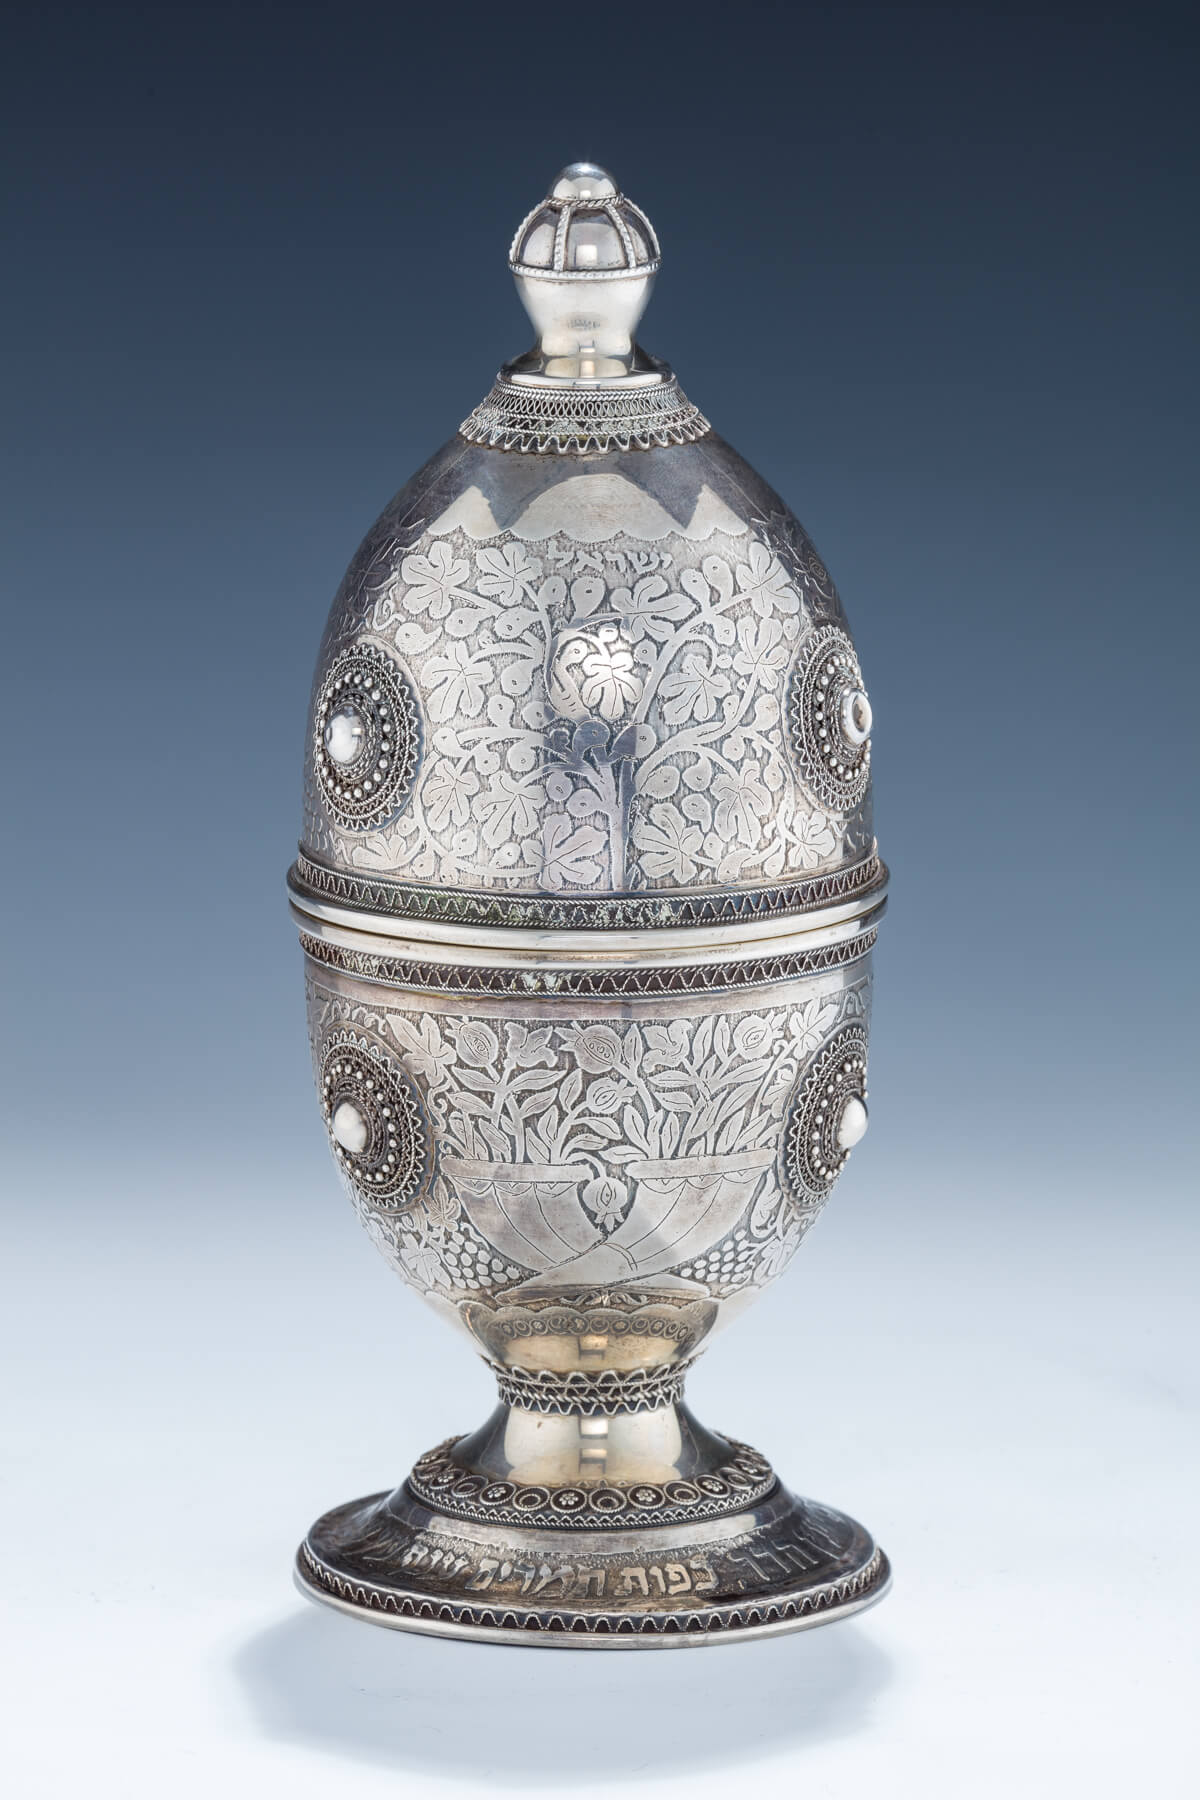 32. A Large Silver Etrog Container by the Bezalel School